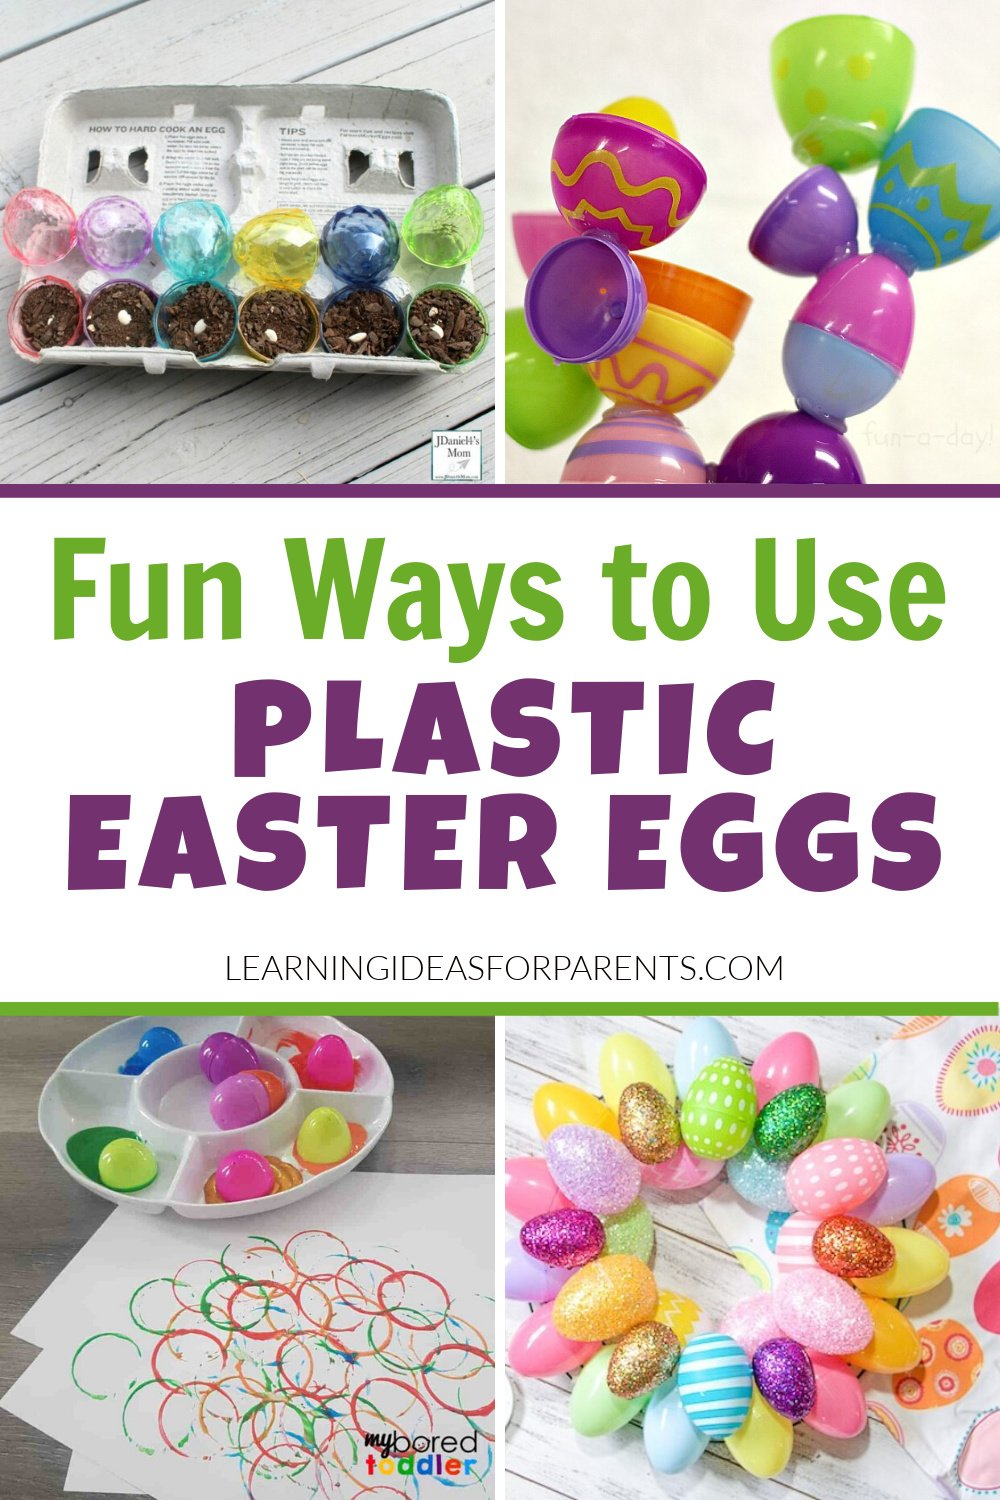 Fun craft activities and learning activities using plastic Easter eggs.